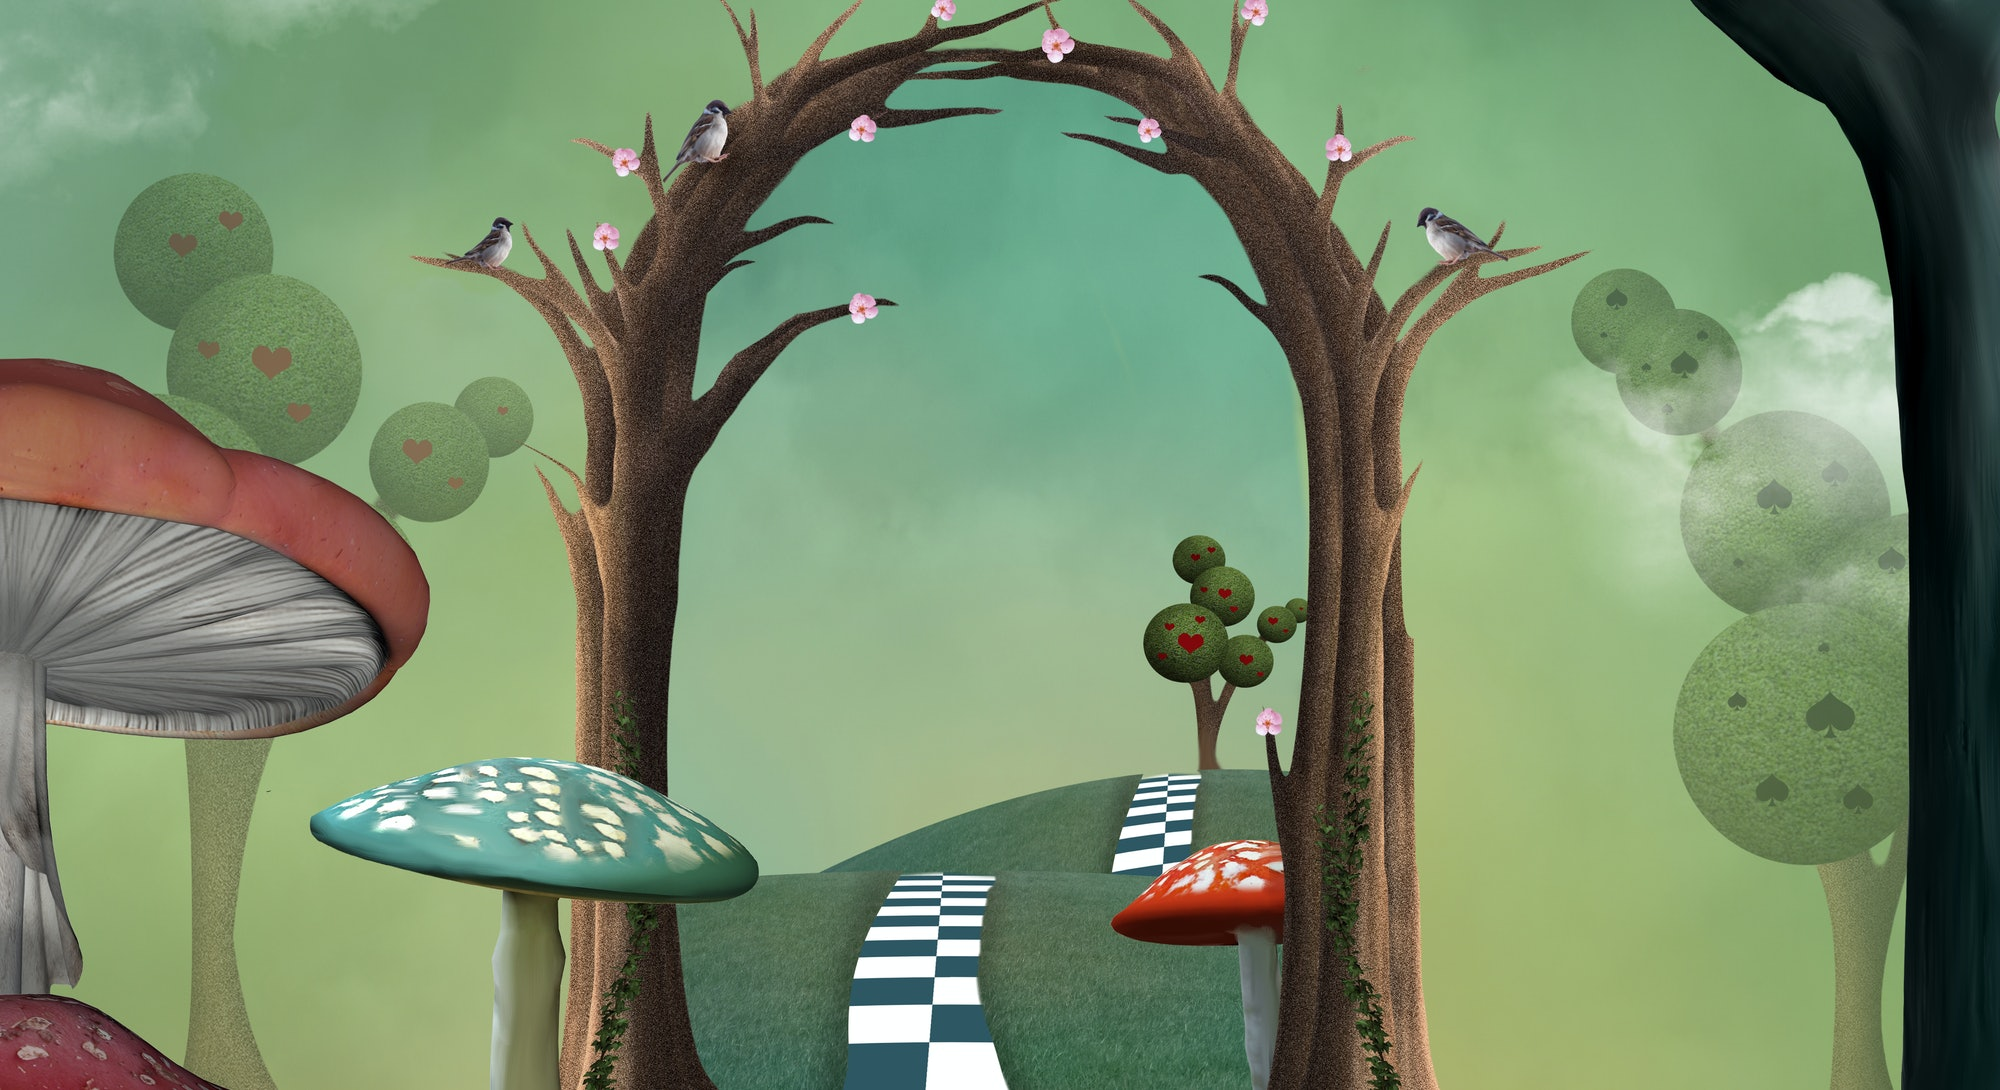 Wonderland surreal landscape with a magic passage and a cheshire cat watching the scene on a tree br...